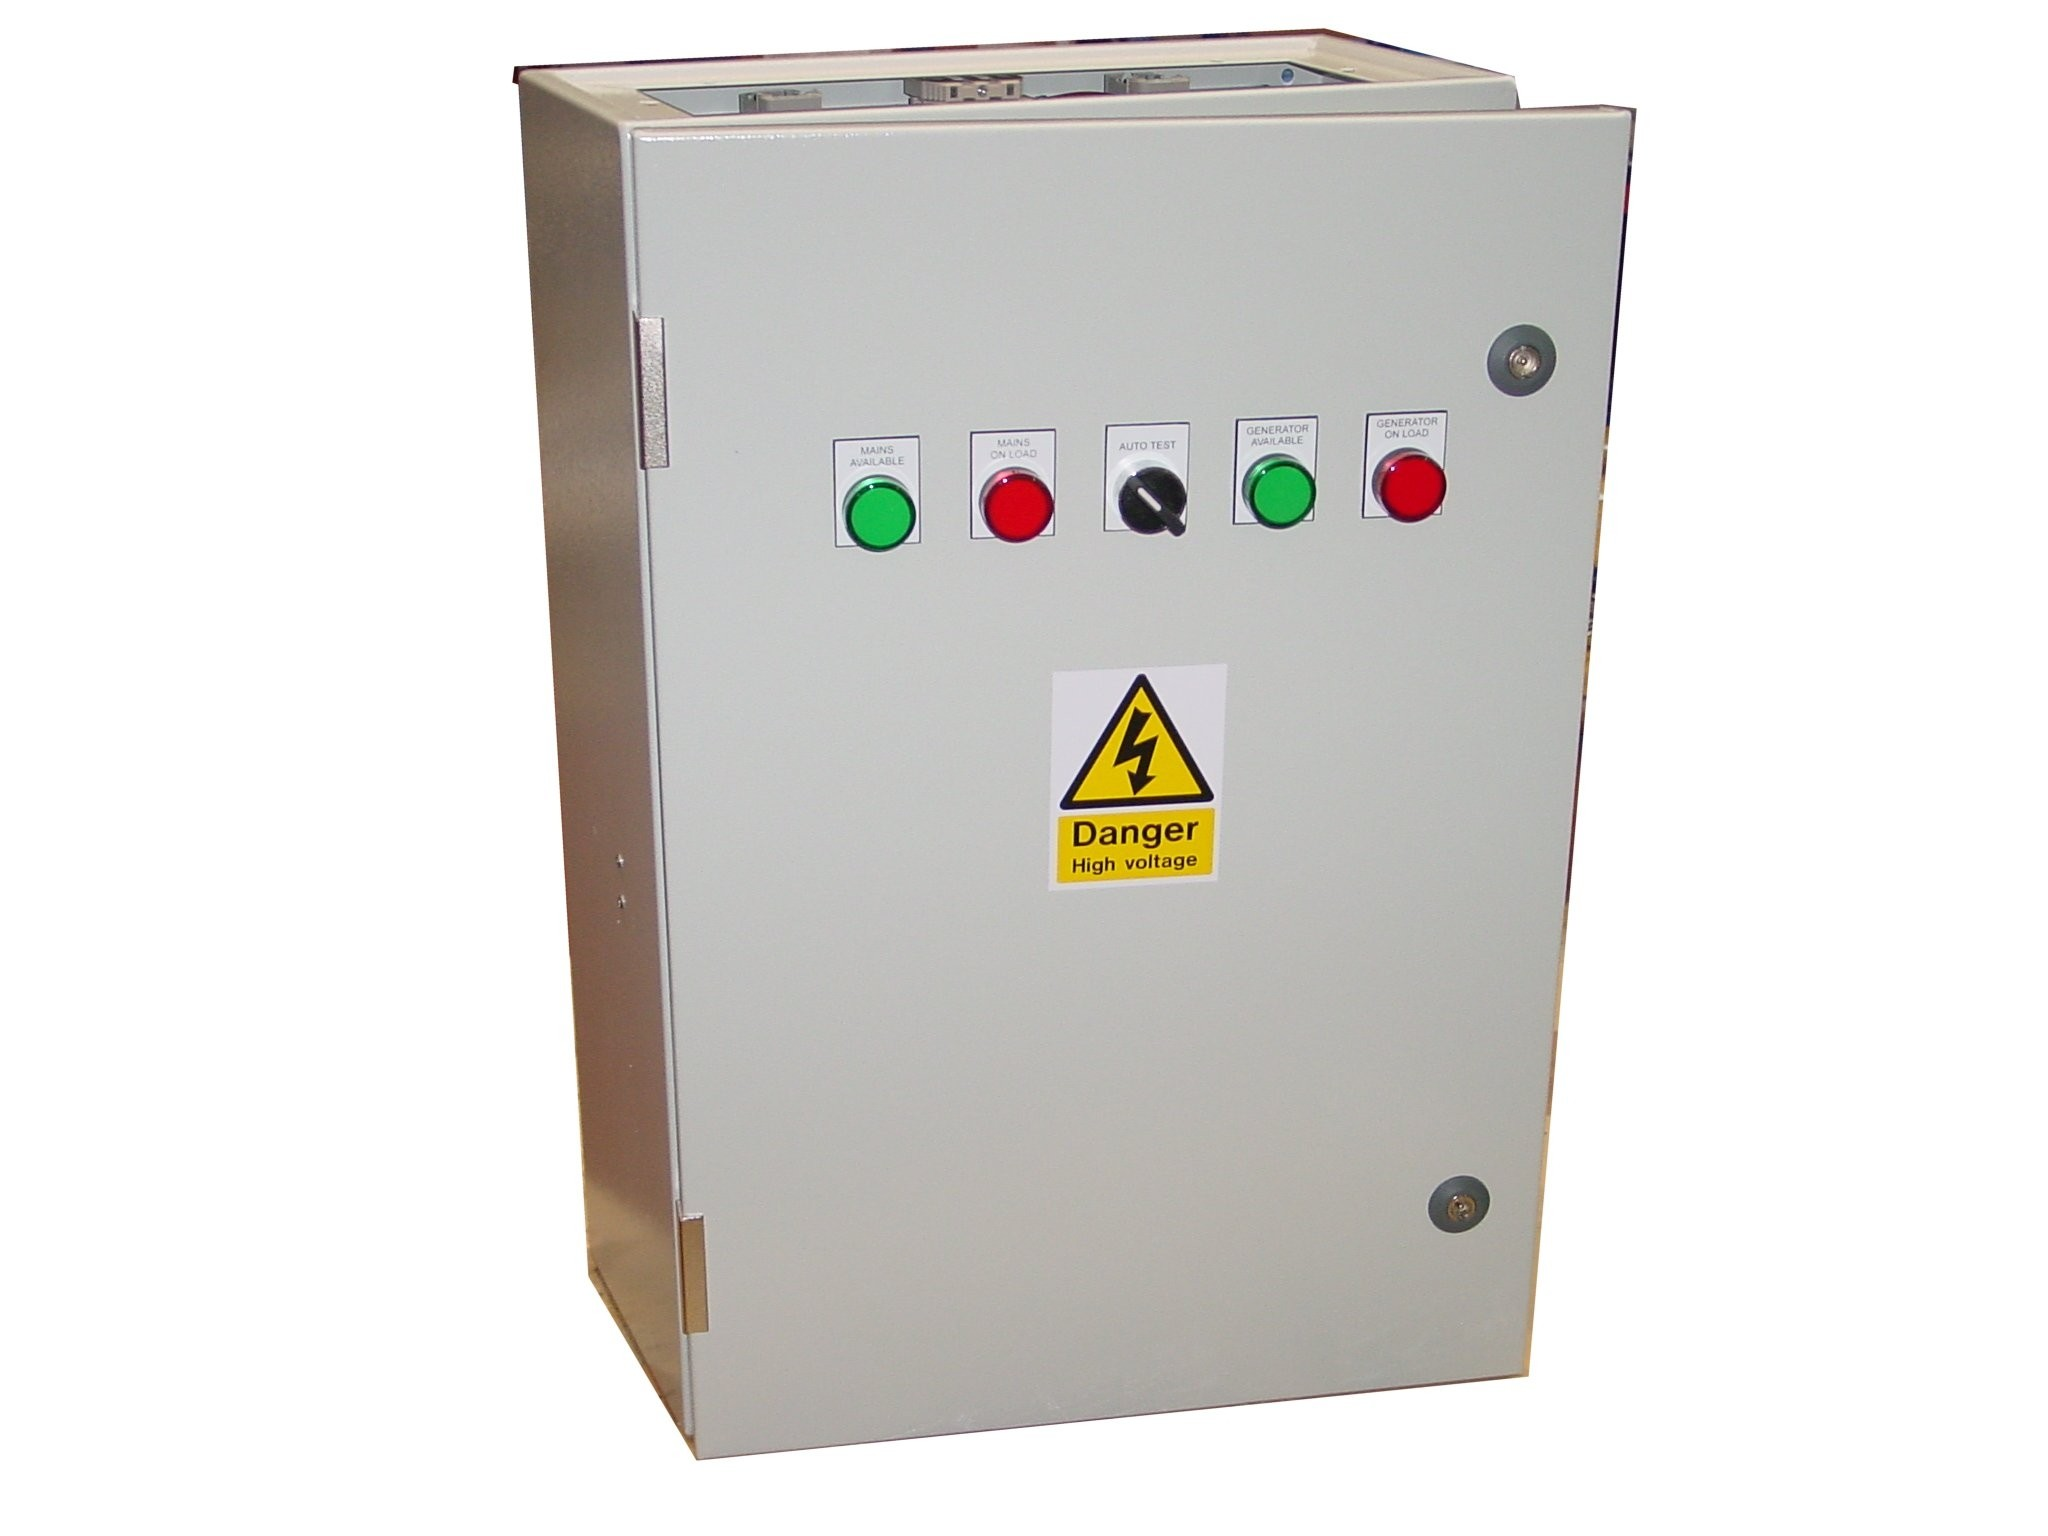 250A ATS Single Phase 230V, UVR Controlled, ABB Contactors